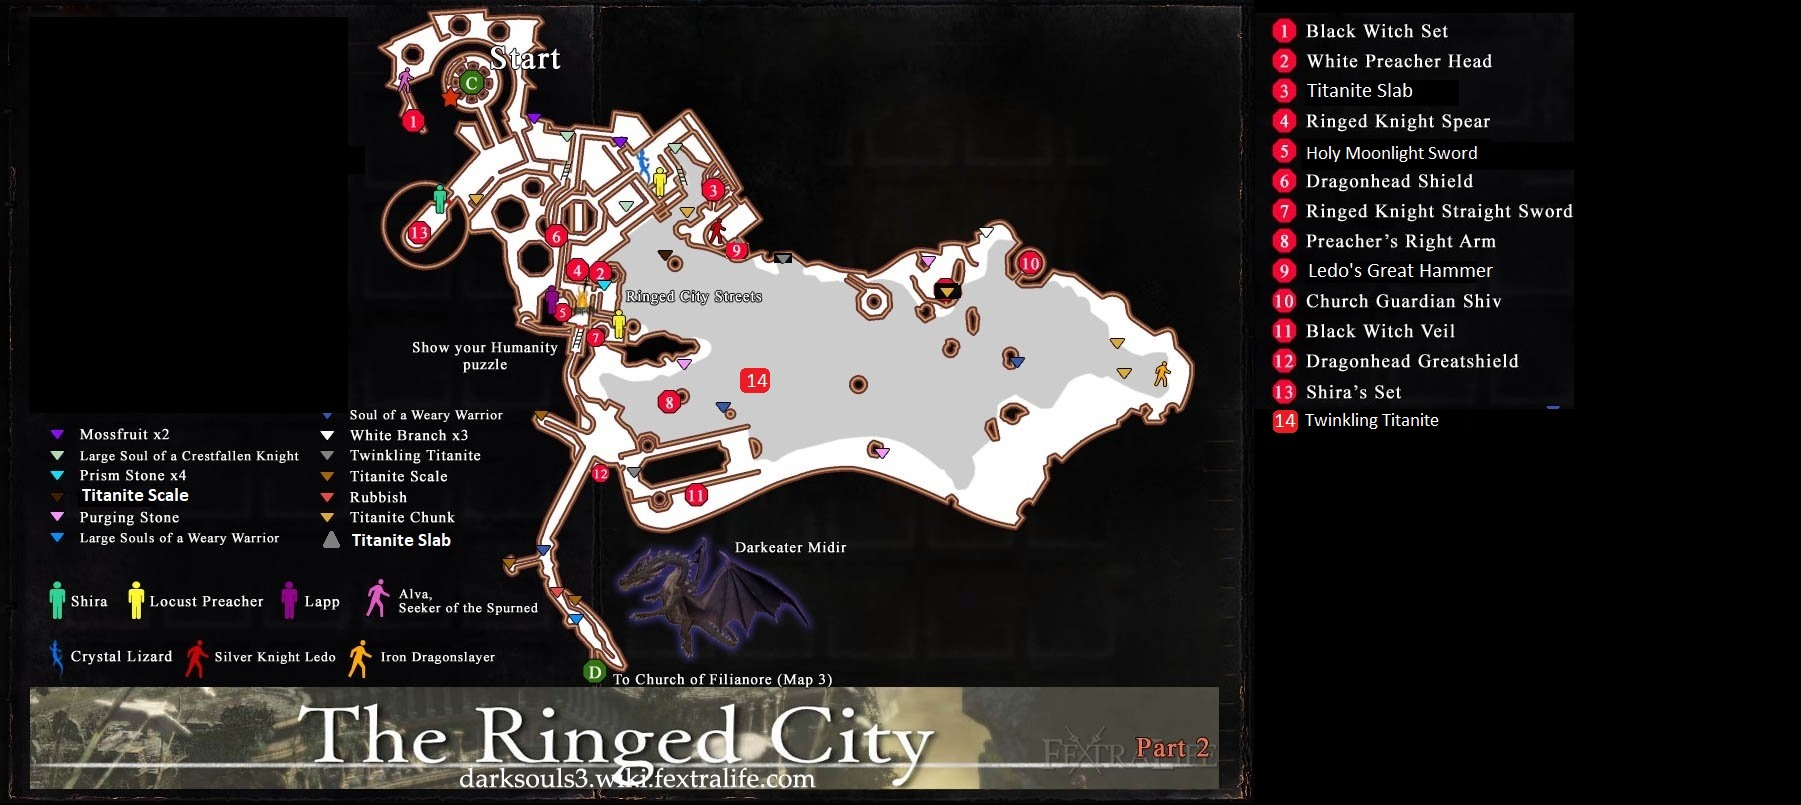 ringed_city_map2.jpg